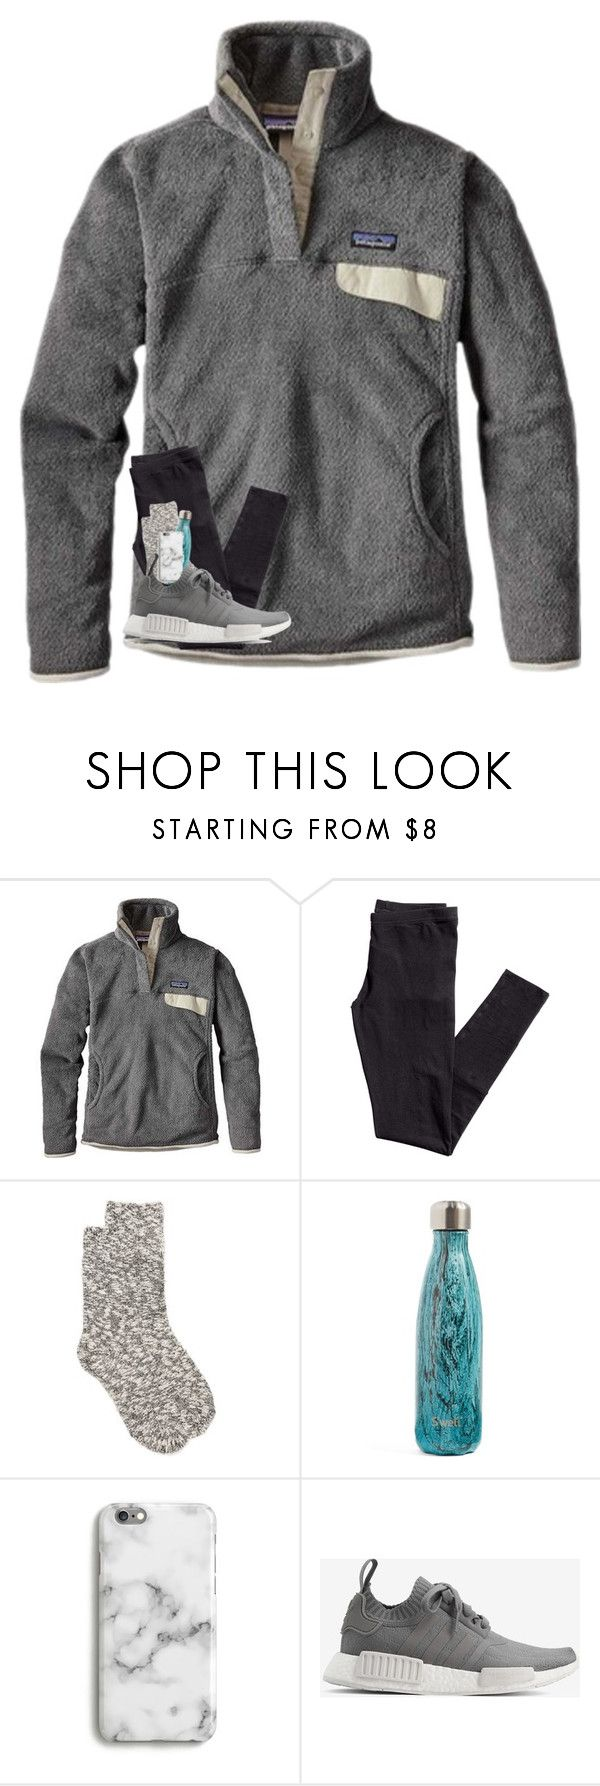 """good night."" by preppy-southerngirl ❤ liked on Polyvore featuring Patagonia, H&M, New Directions, S'well, Harper & Blake and adidas"